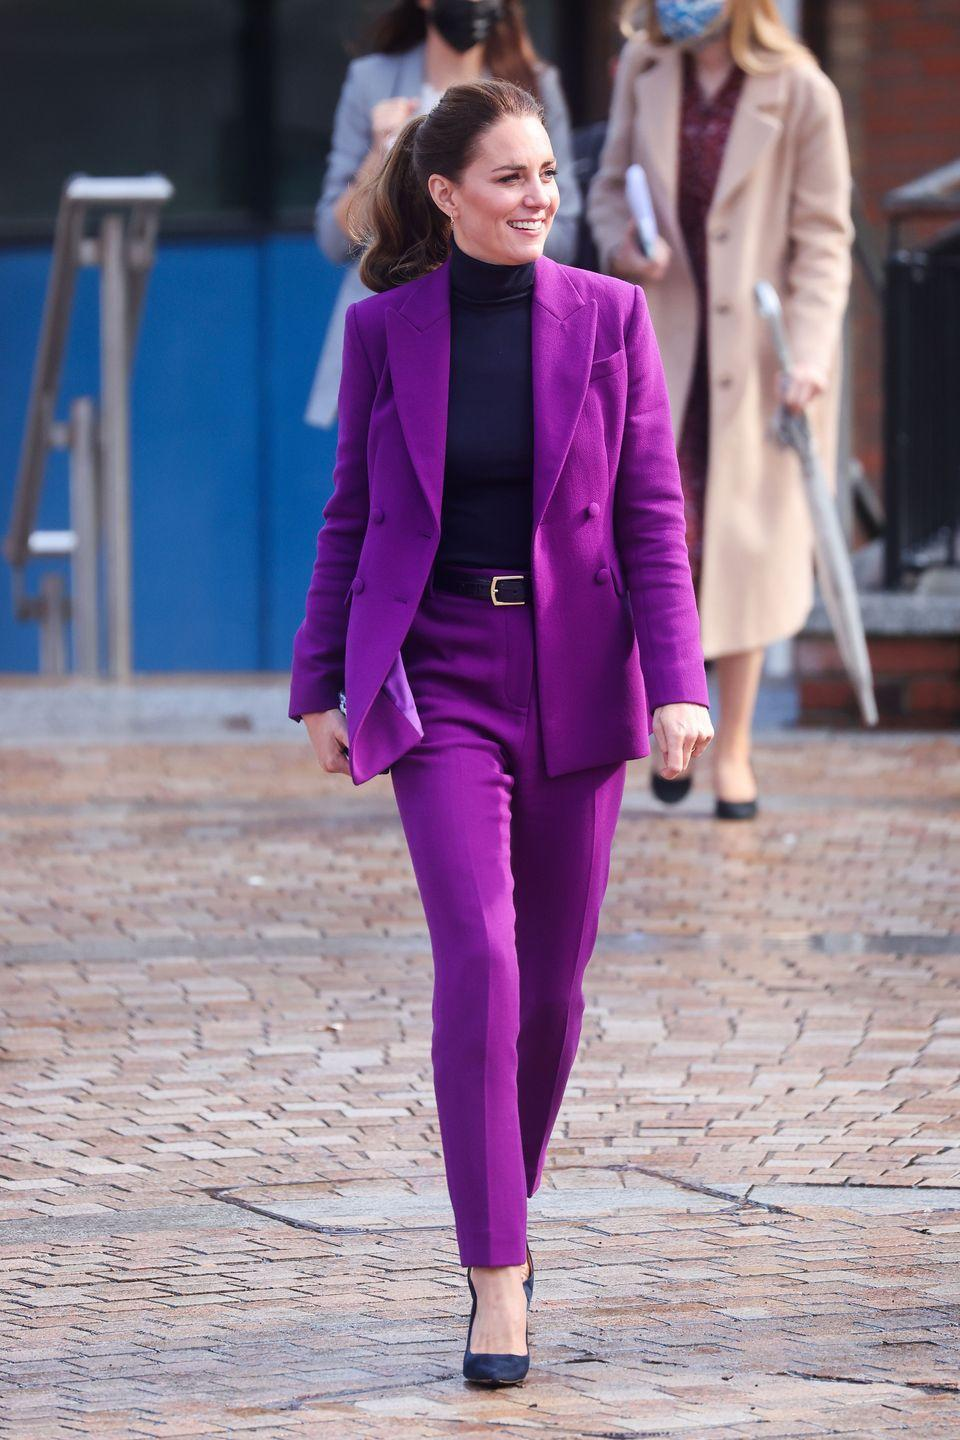 <p><strong>September 2021</strong> The Duchess of Cambridge stepped out of her style comfort zone in a regal violet suit by Emilia Wickstead for a tour of a university campus in Derry, Northern Ireland. The paired the purple two-piece with suede courts and a black polo neck jumper.</p>